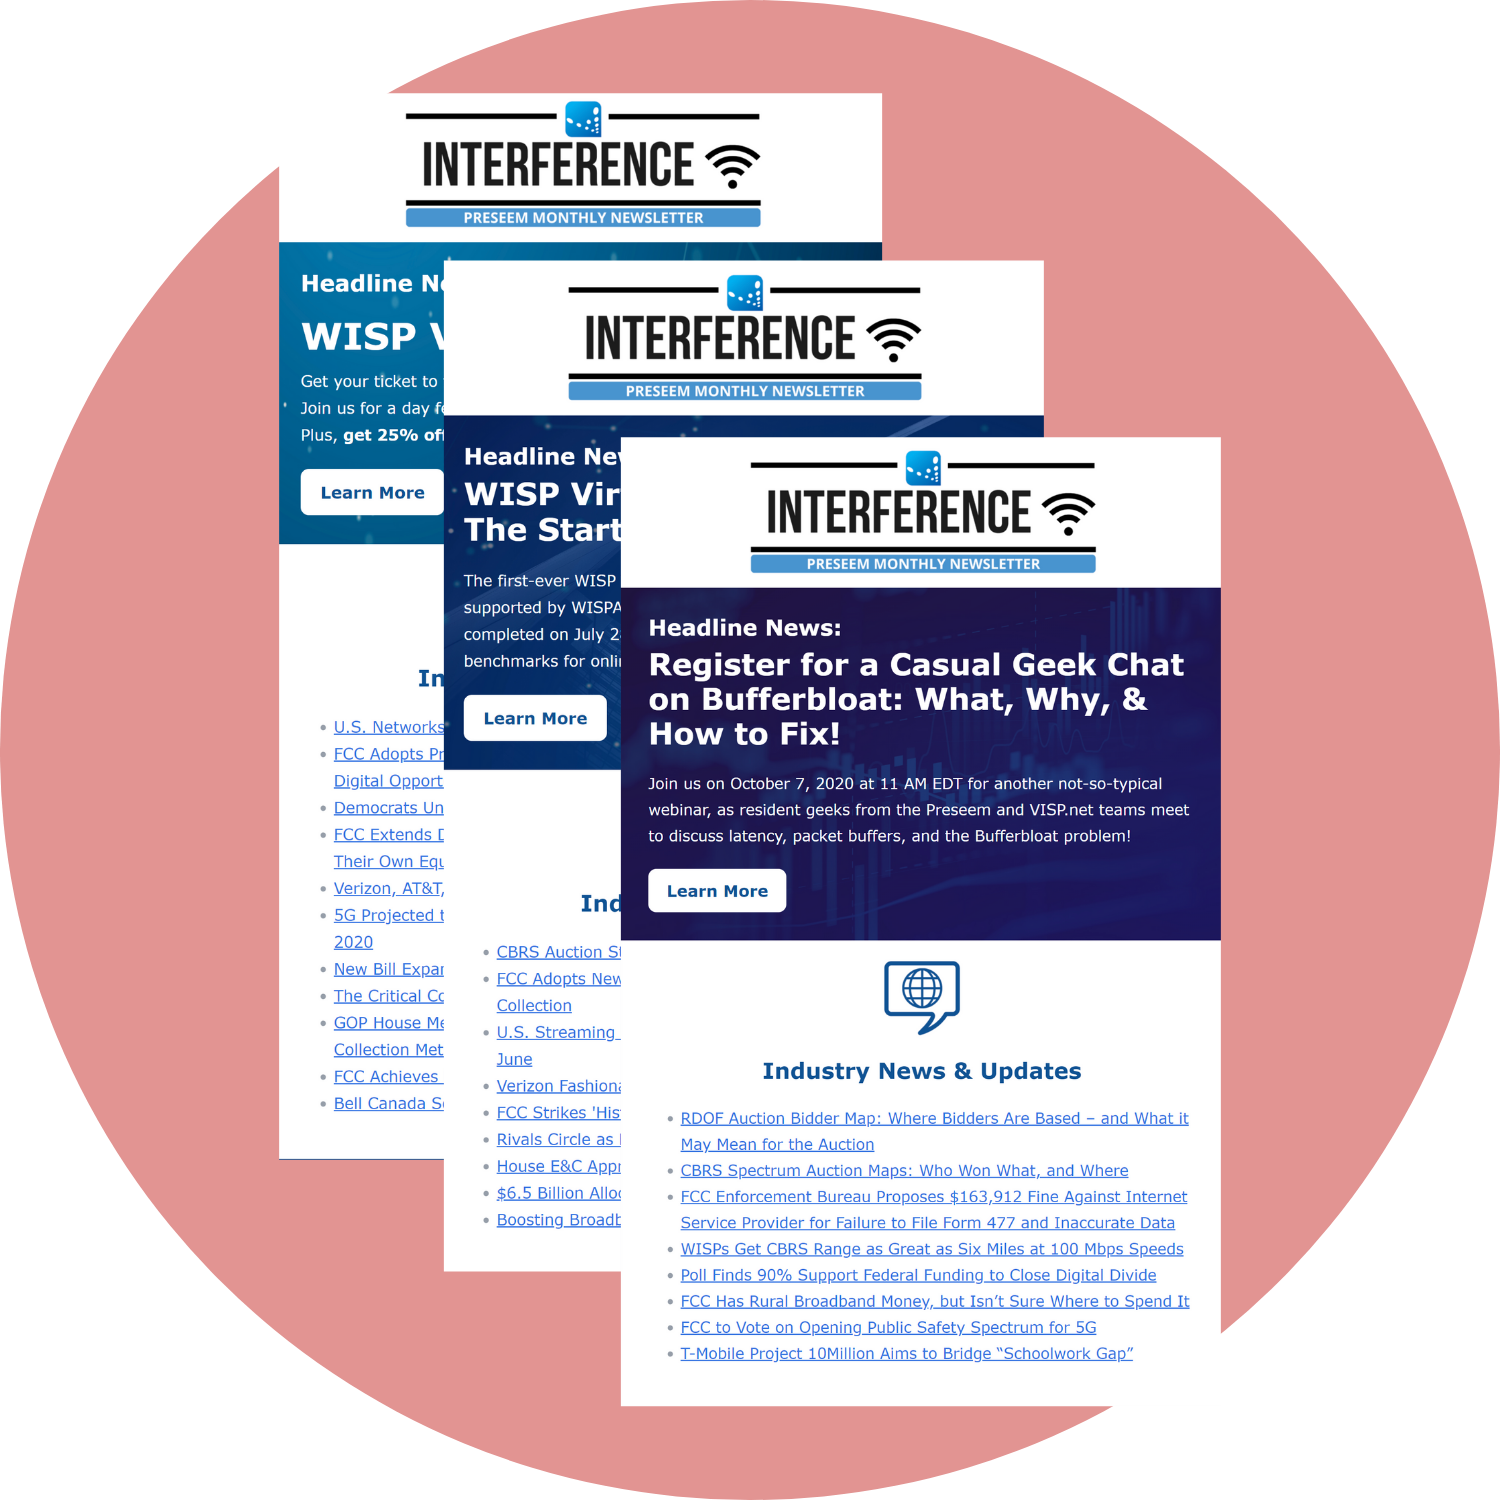 Stay Connected with The Interference Newsletter